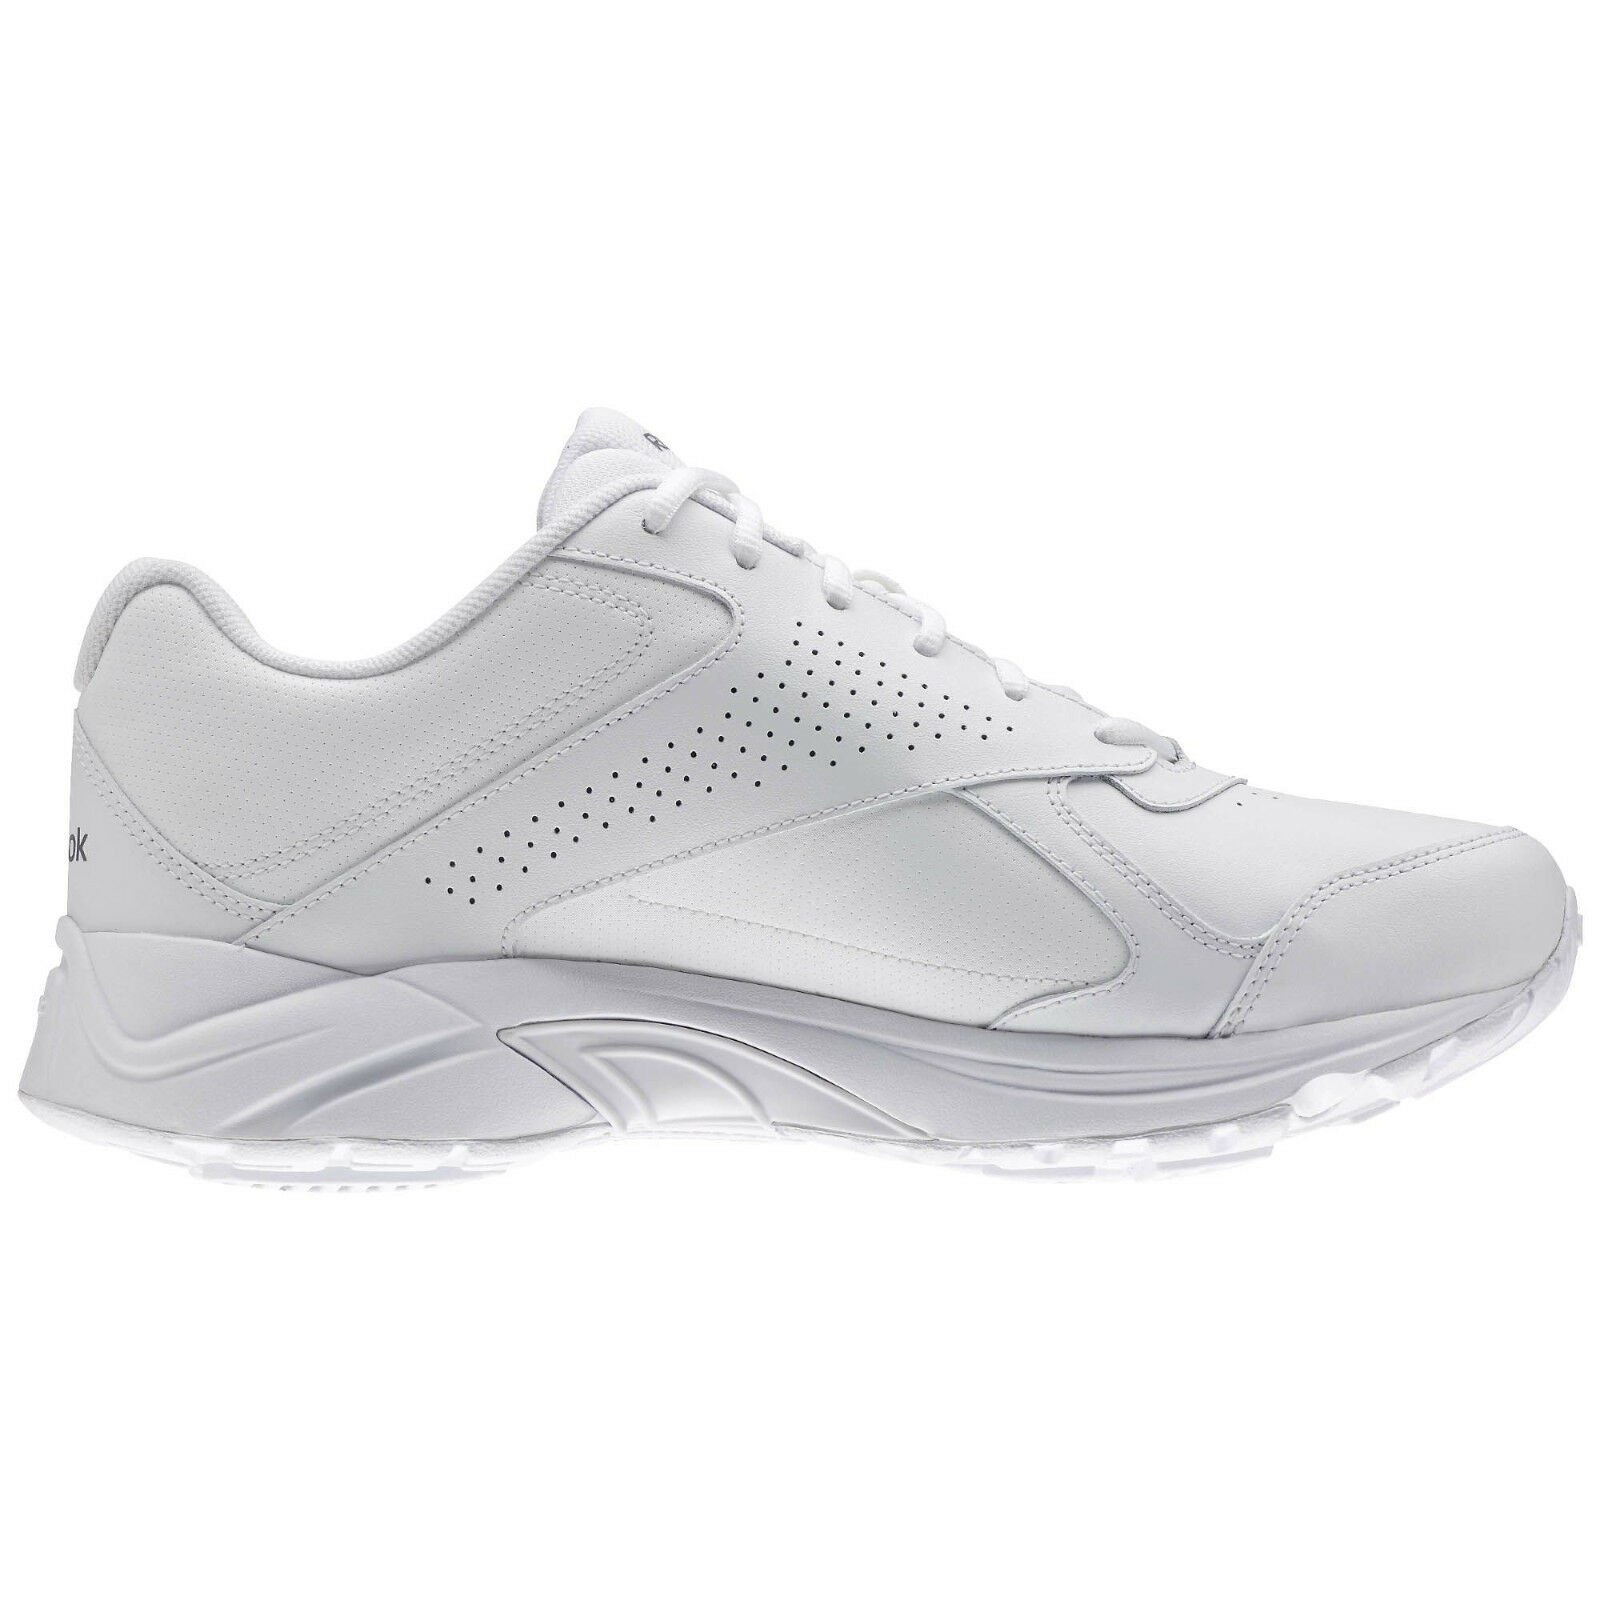 Reebok Walk Ulytra V DMX White AQ9221 X Wide 4E Sneaker shoes Size 8 NEW